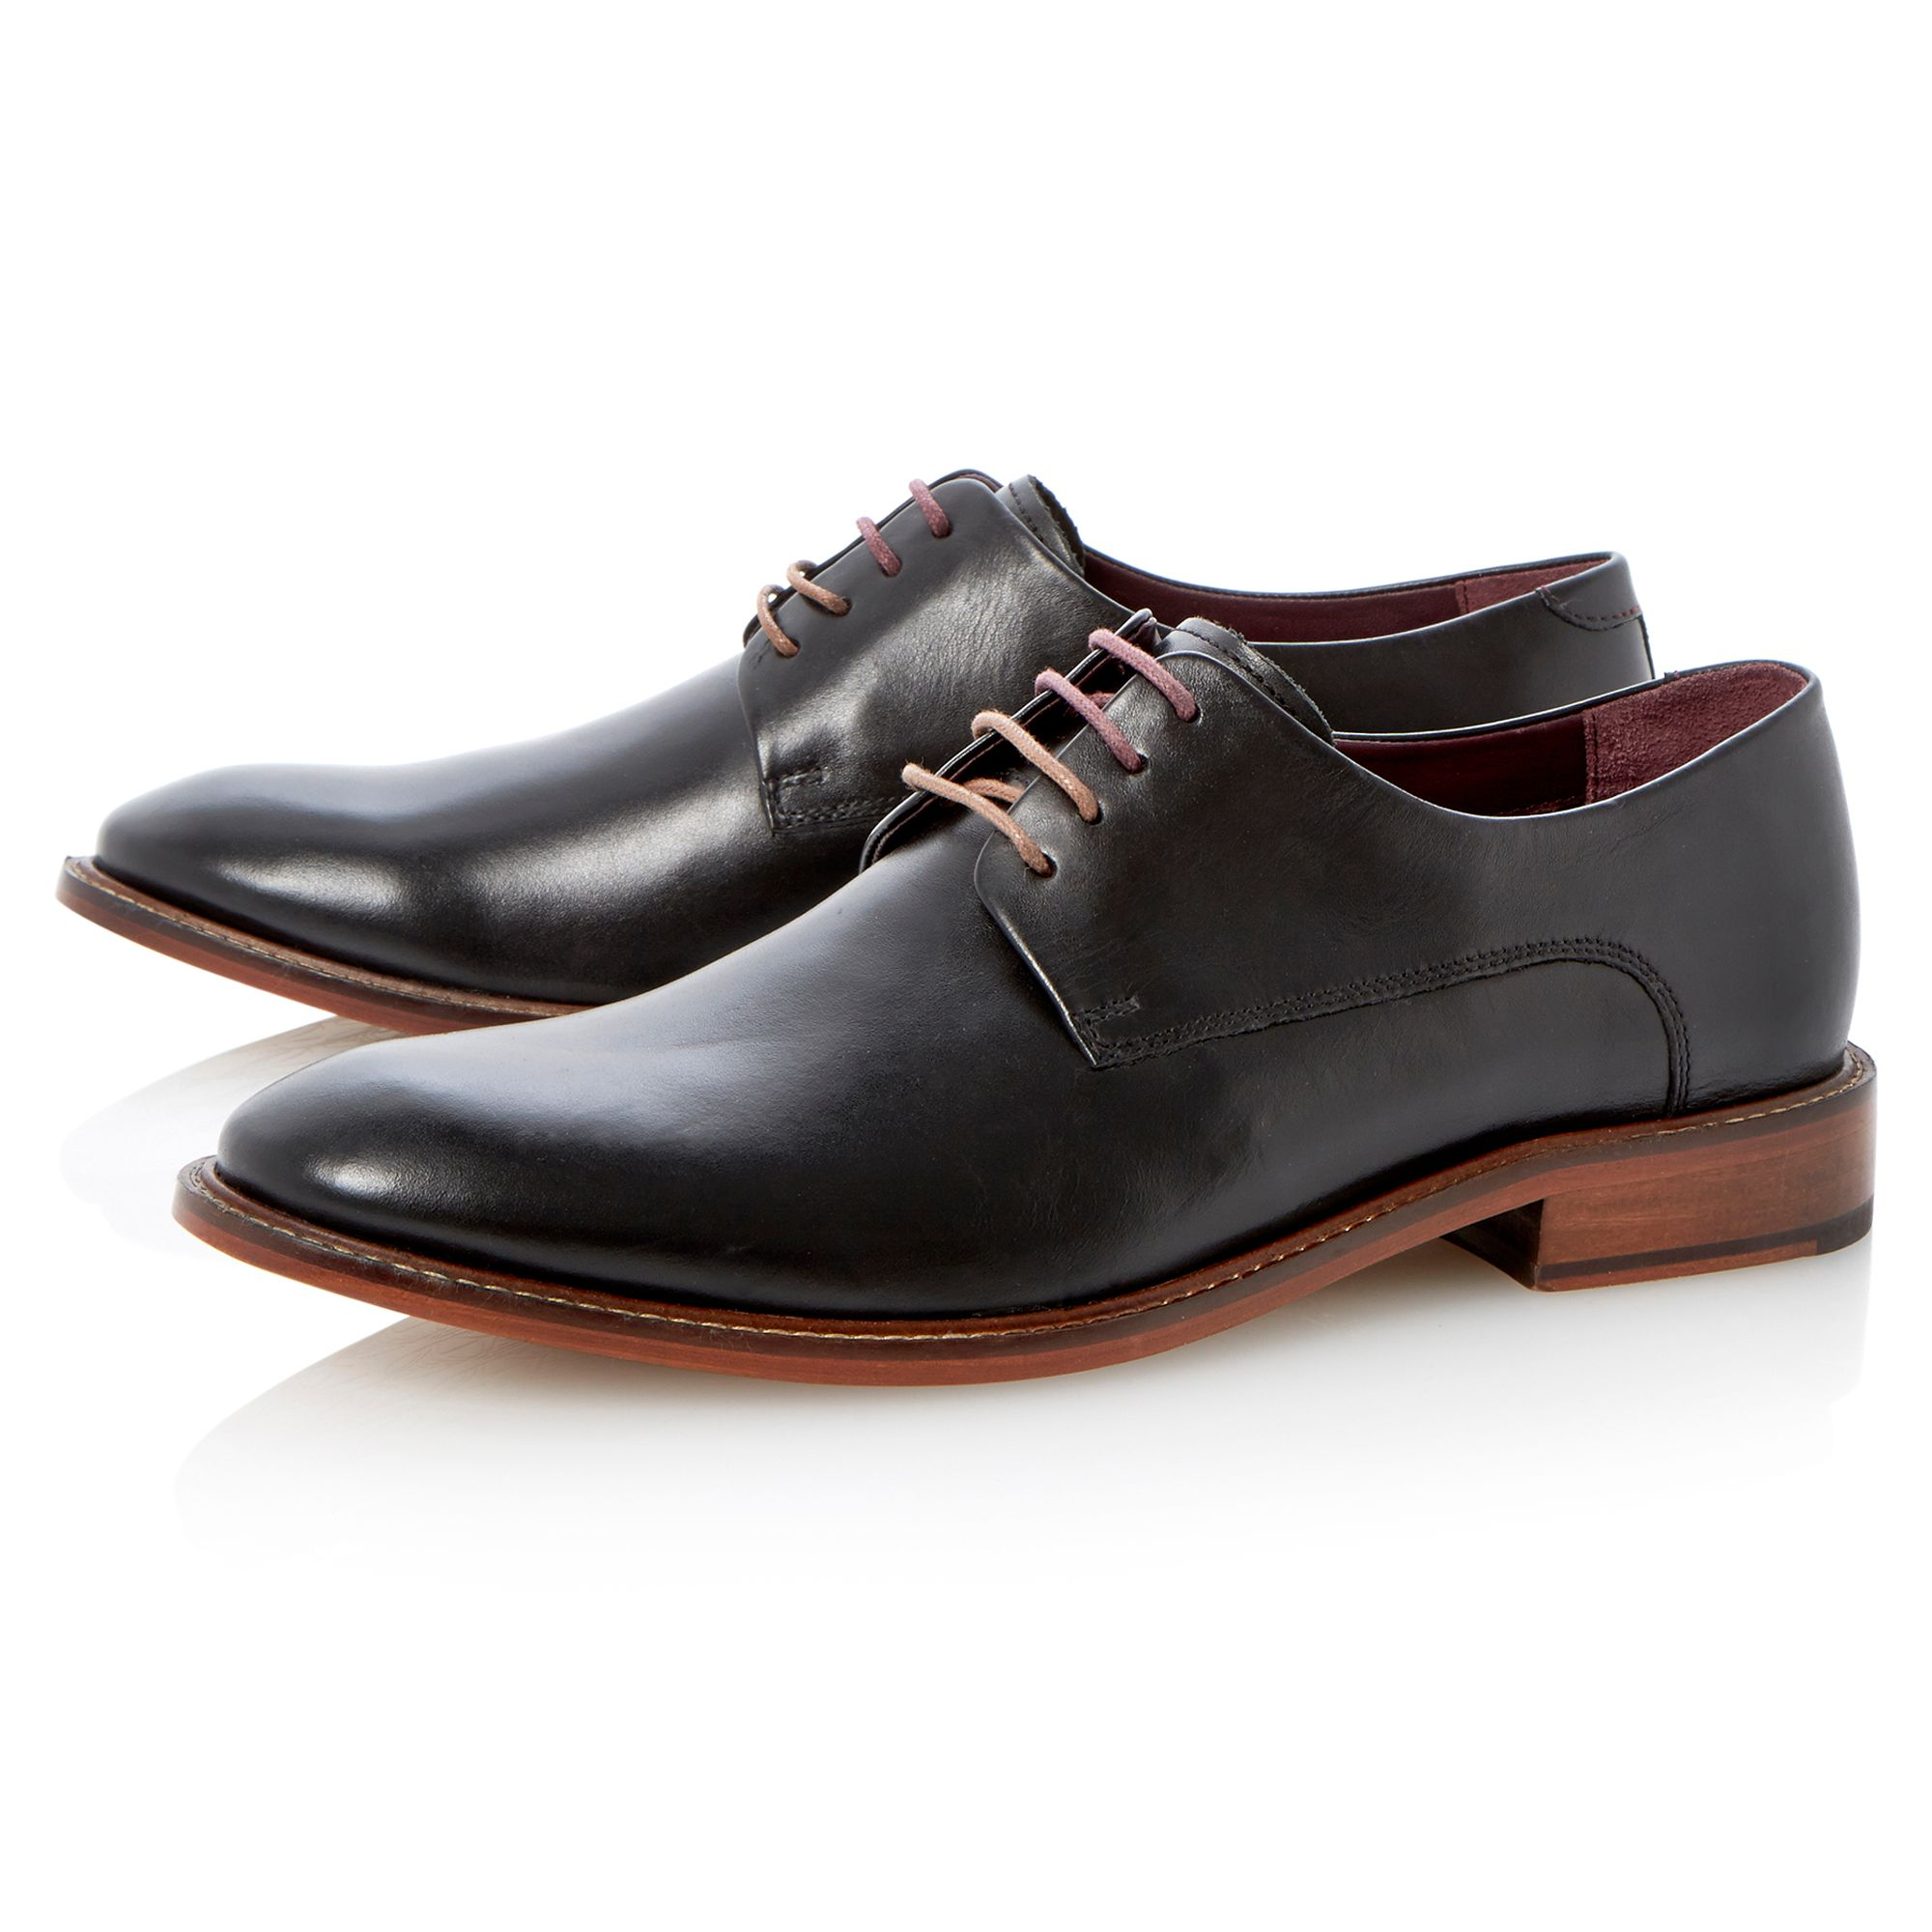 Irron 2 lace up round toe eyelet derby shoes